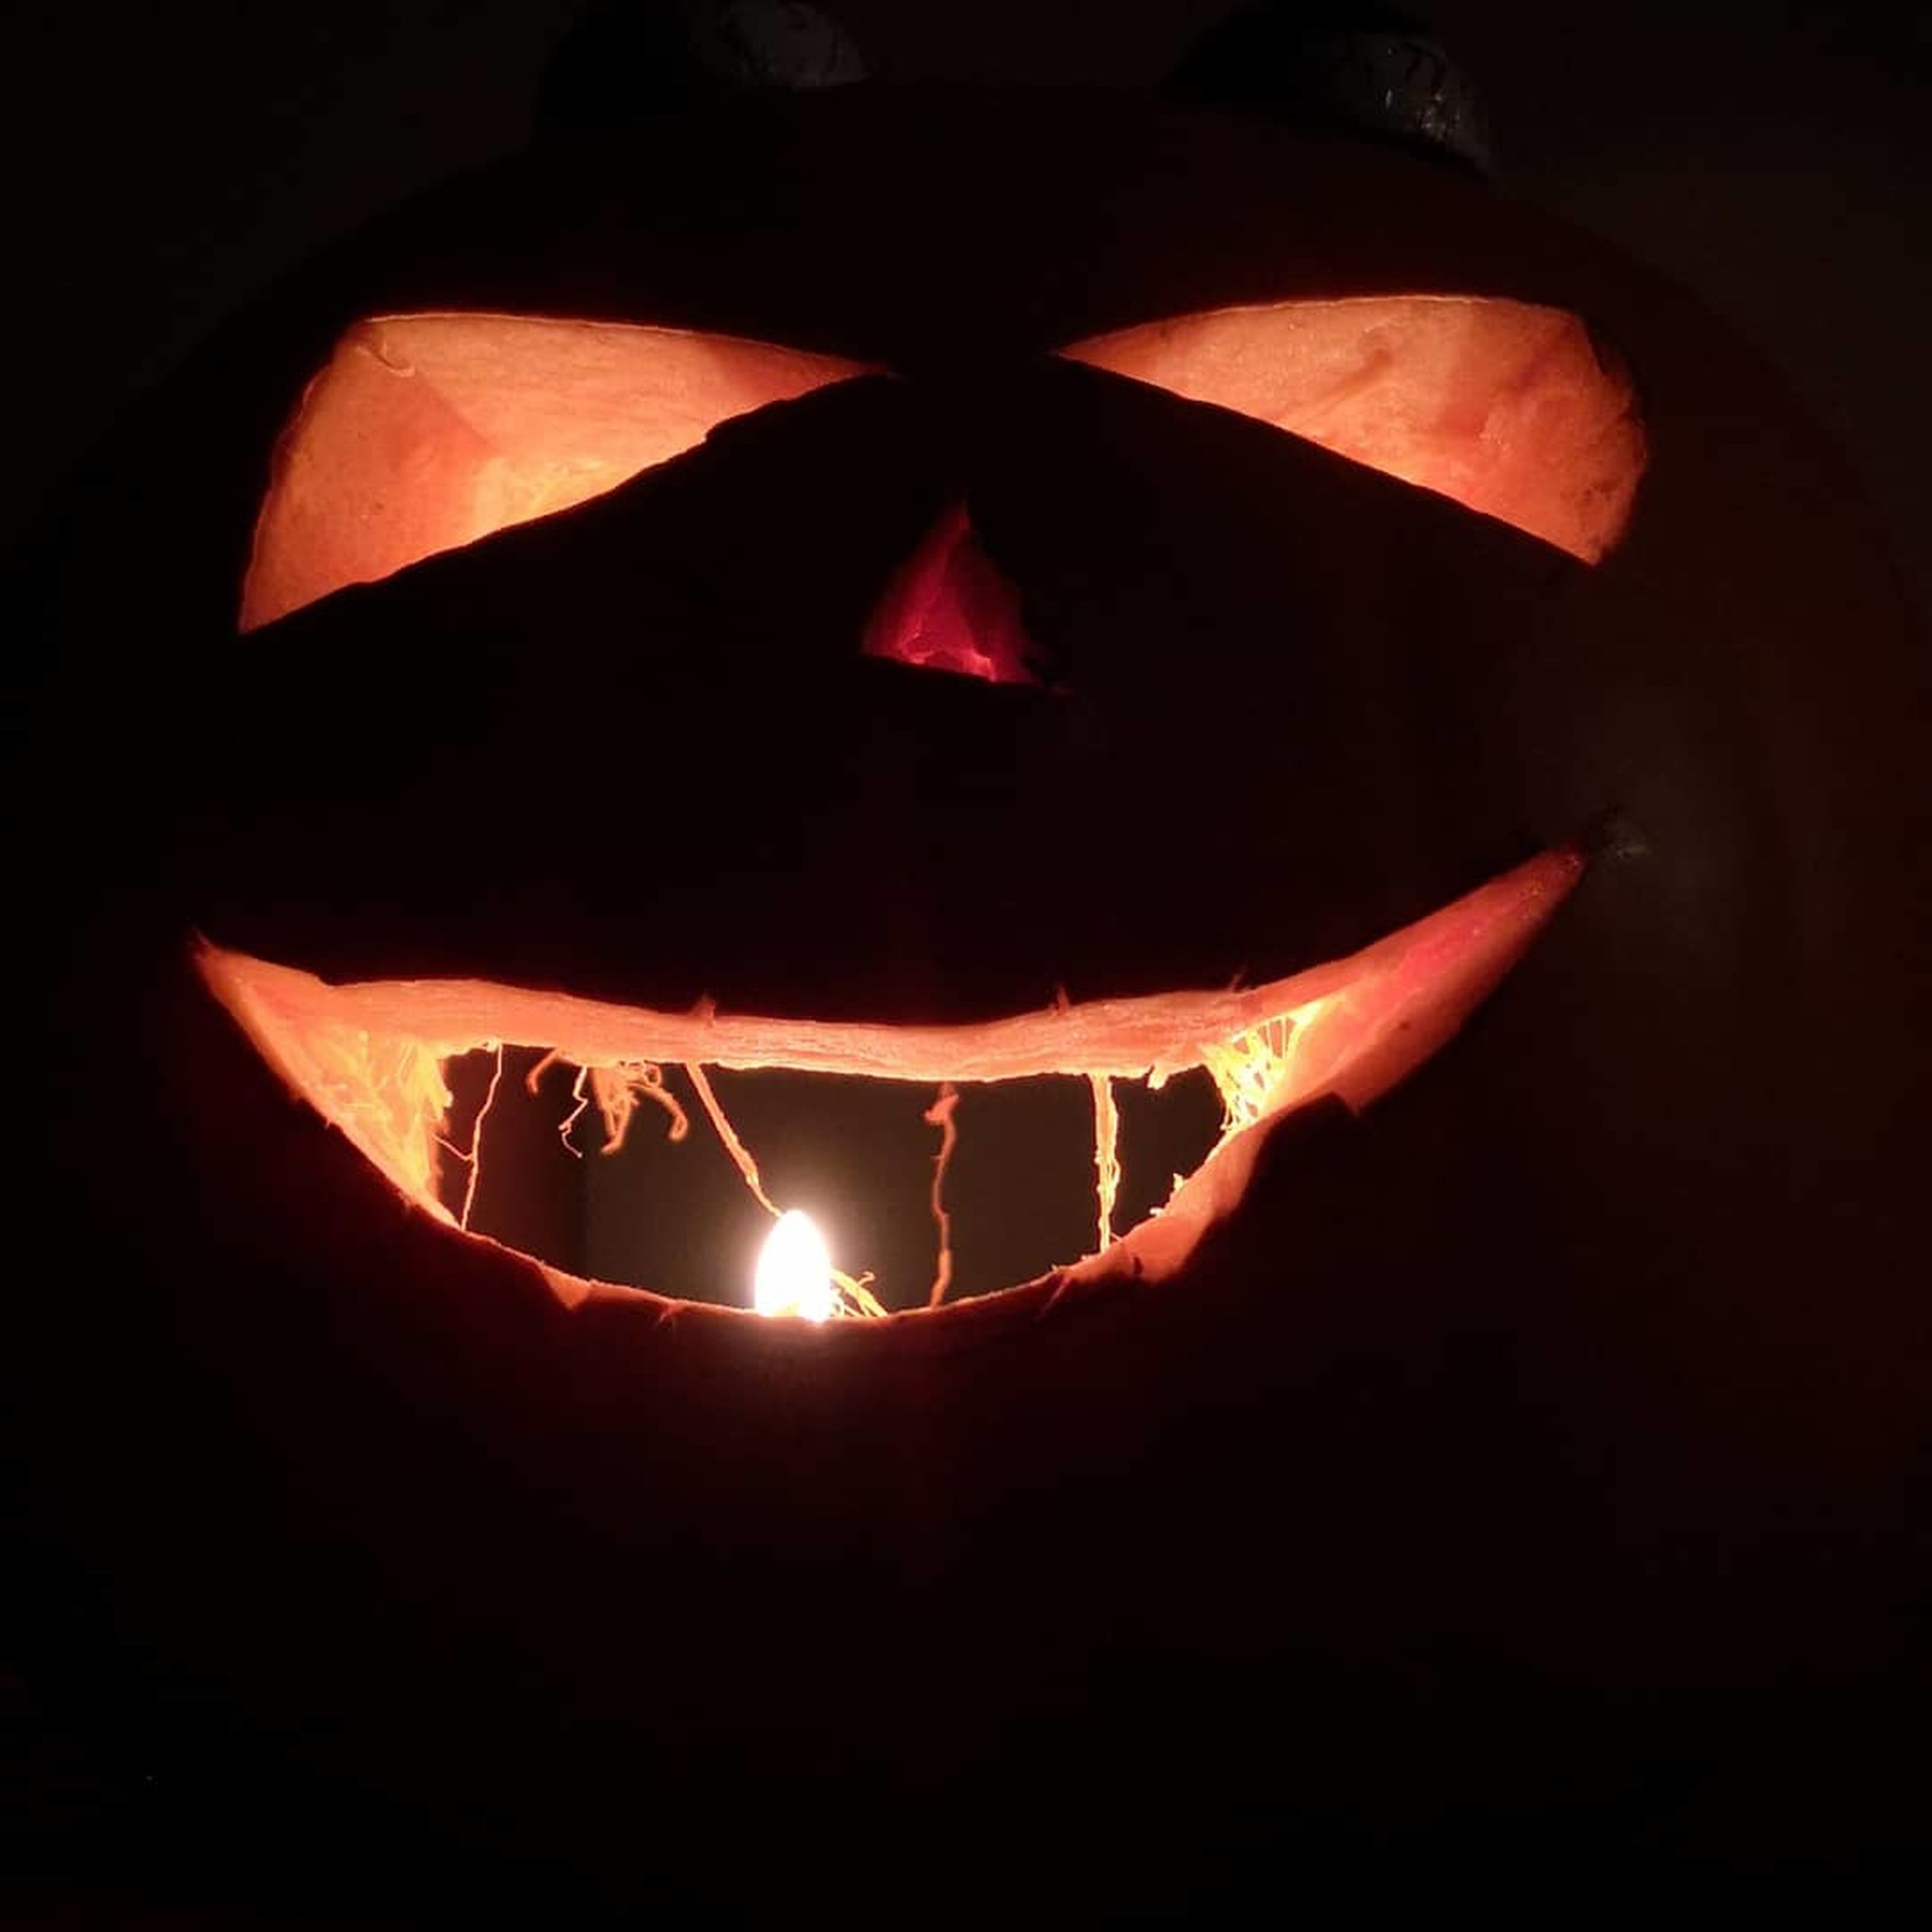 illuminated, halloween, celebration, anthropomorphic, food and drink, anthropomorphic face, face, no people, close-up, pumpkin, food, indoors, creativity, orange color, jack o' lantern, black background, night, art and craft, spooky, glowing, dark